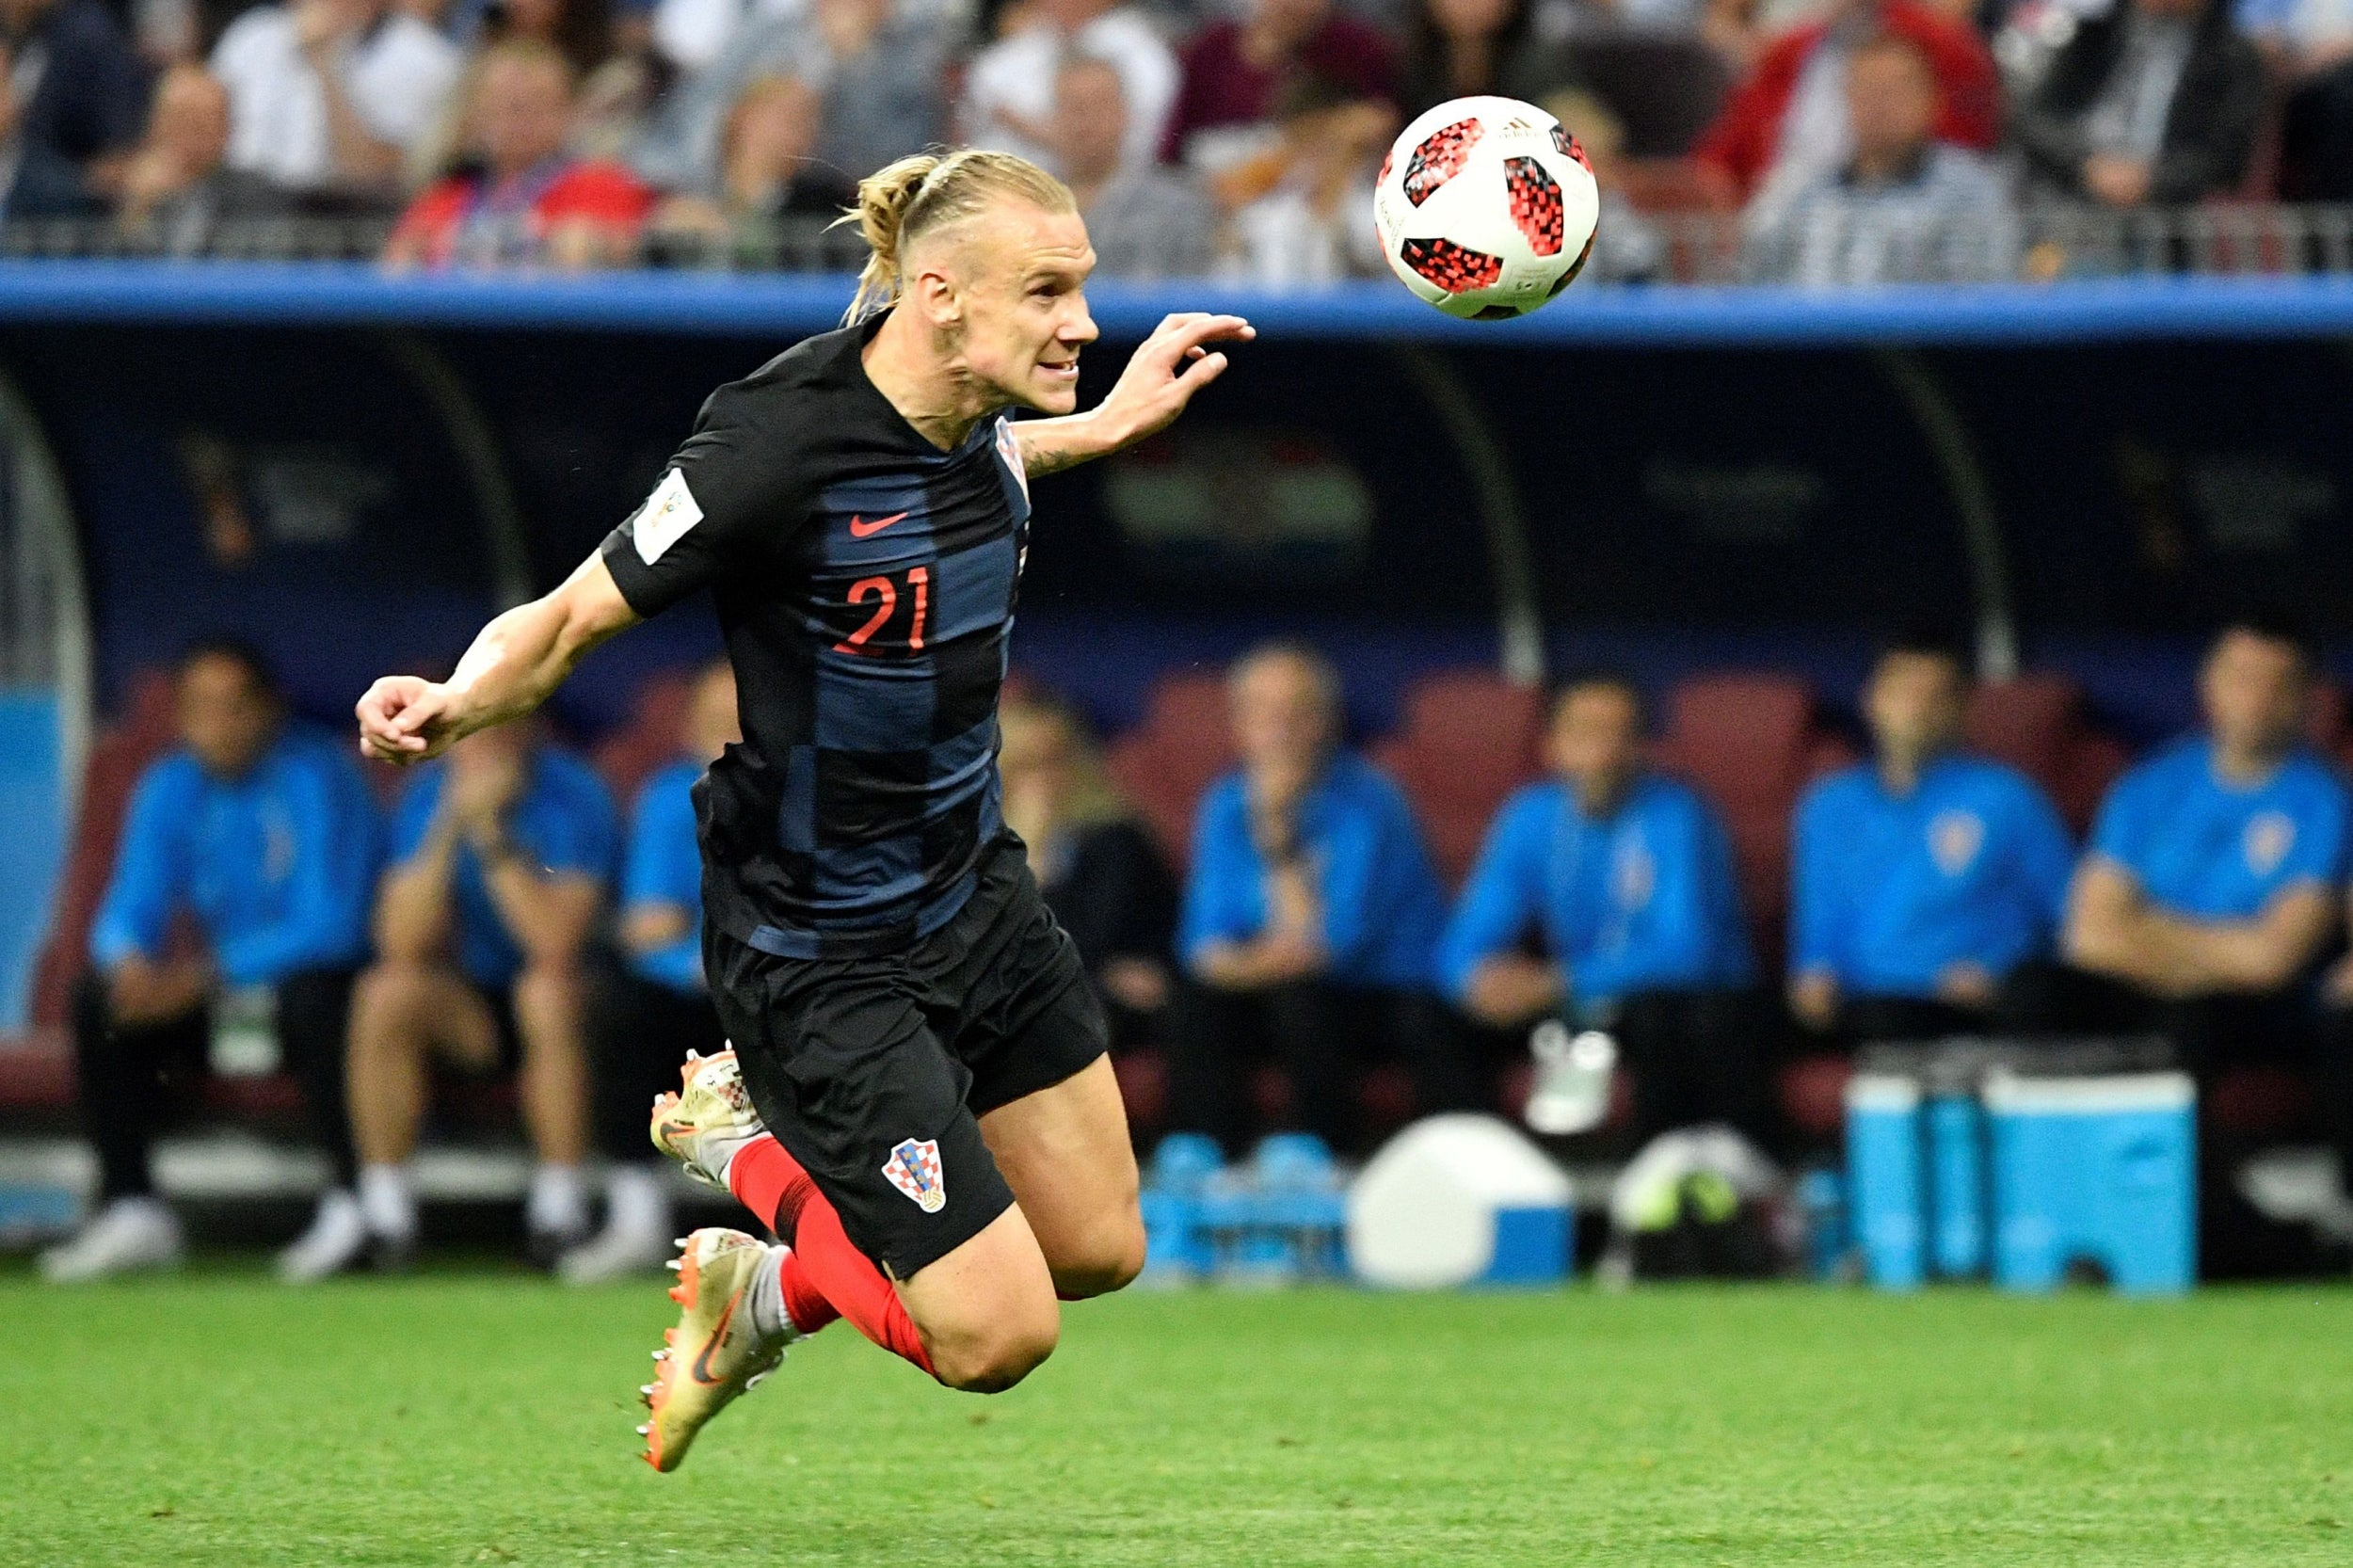 Domagoj Vida – 7 out of 10